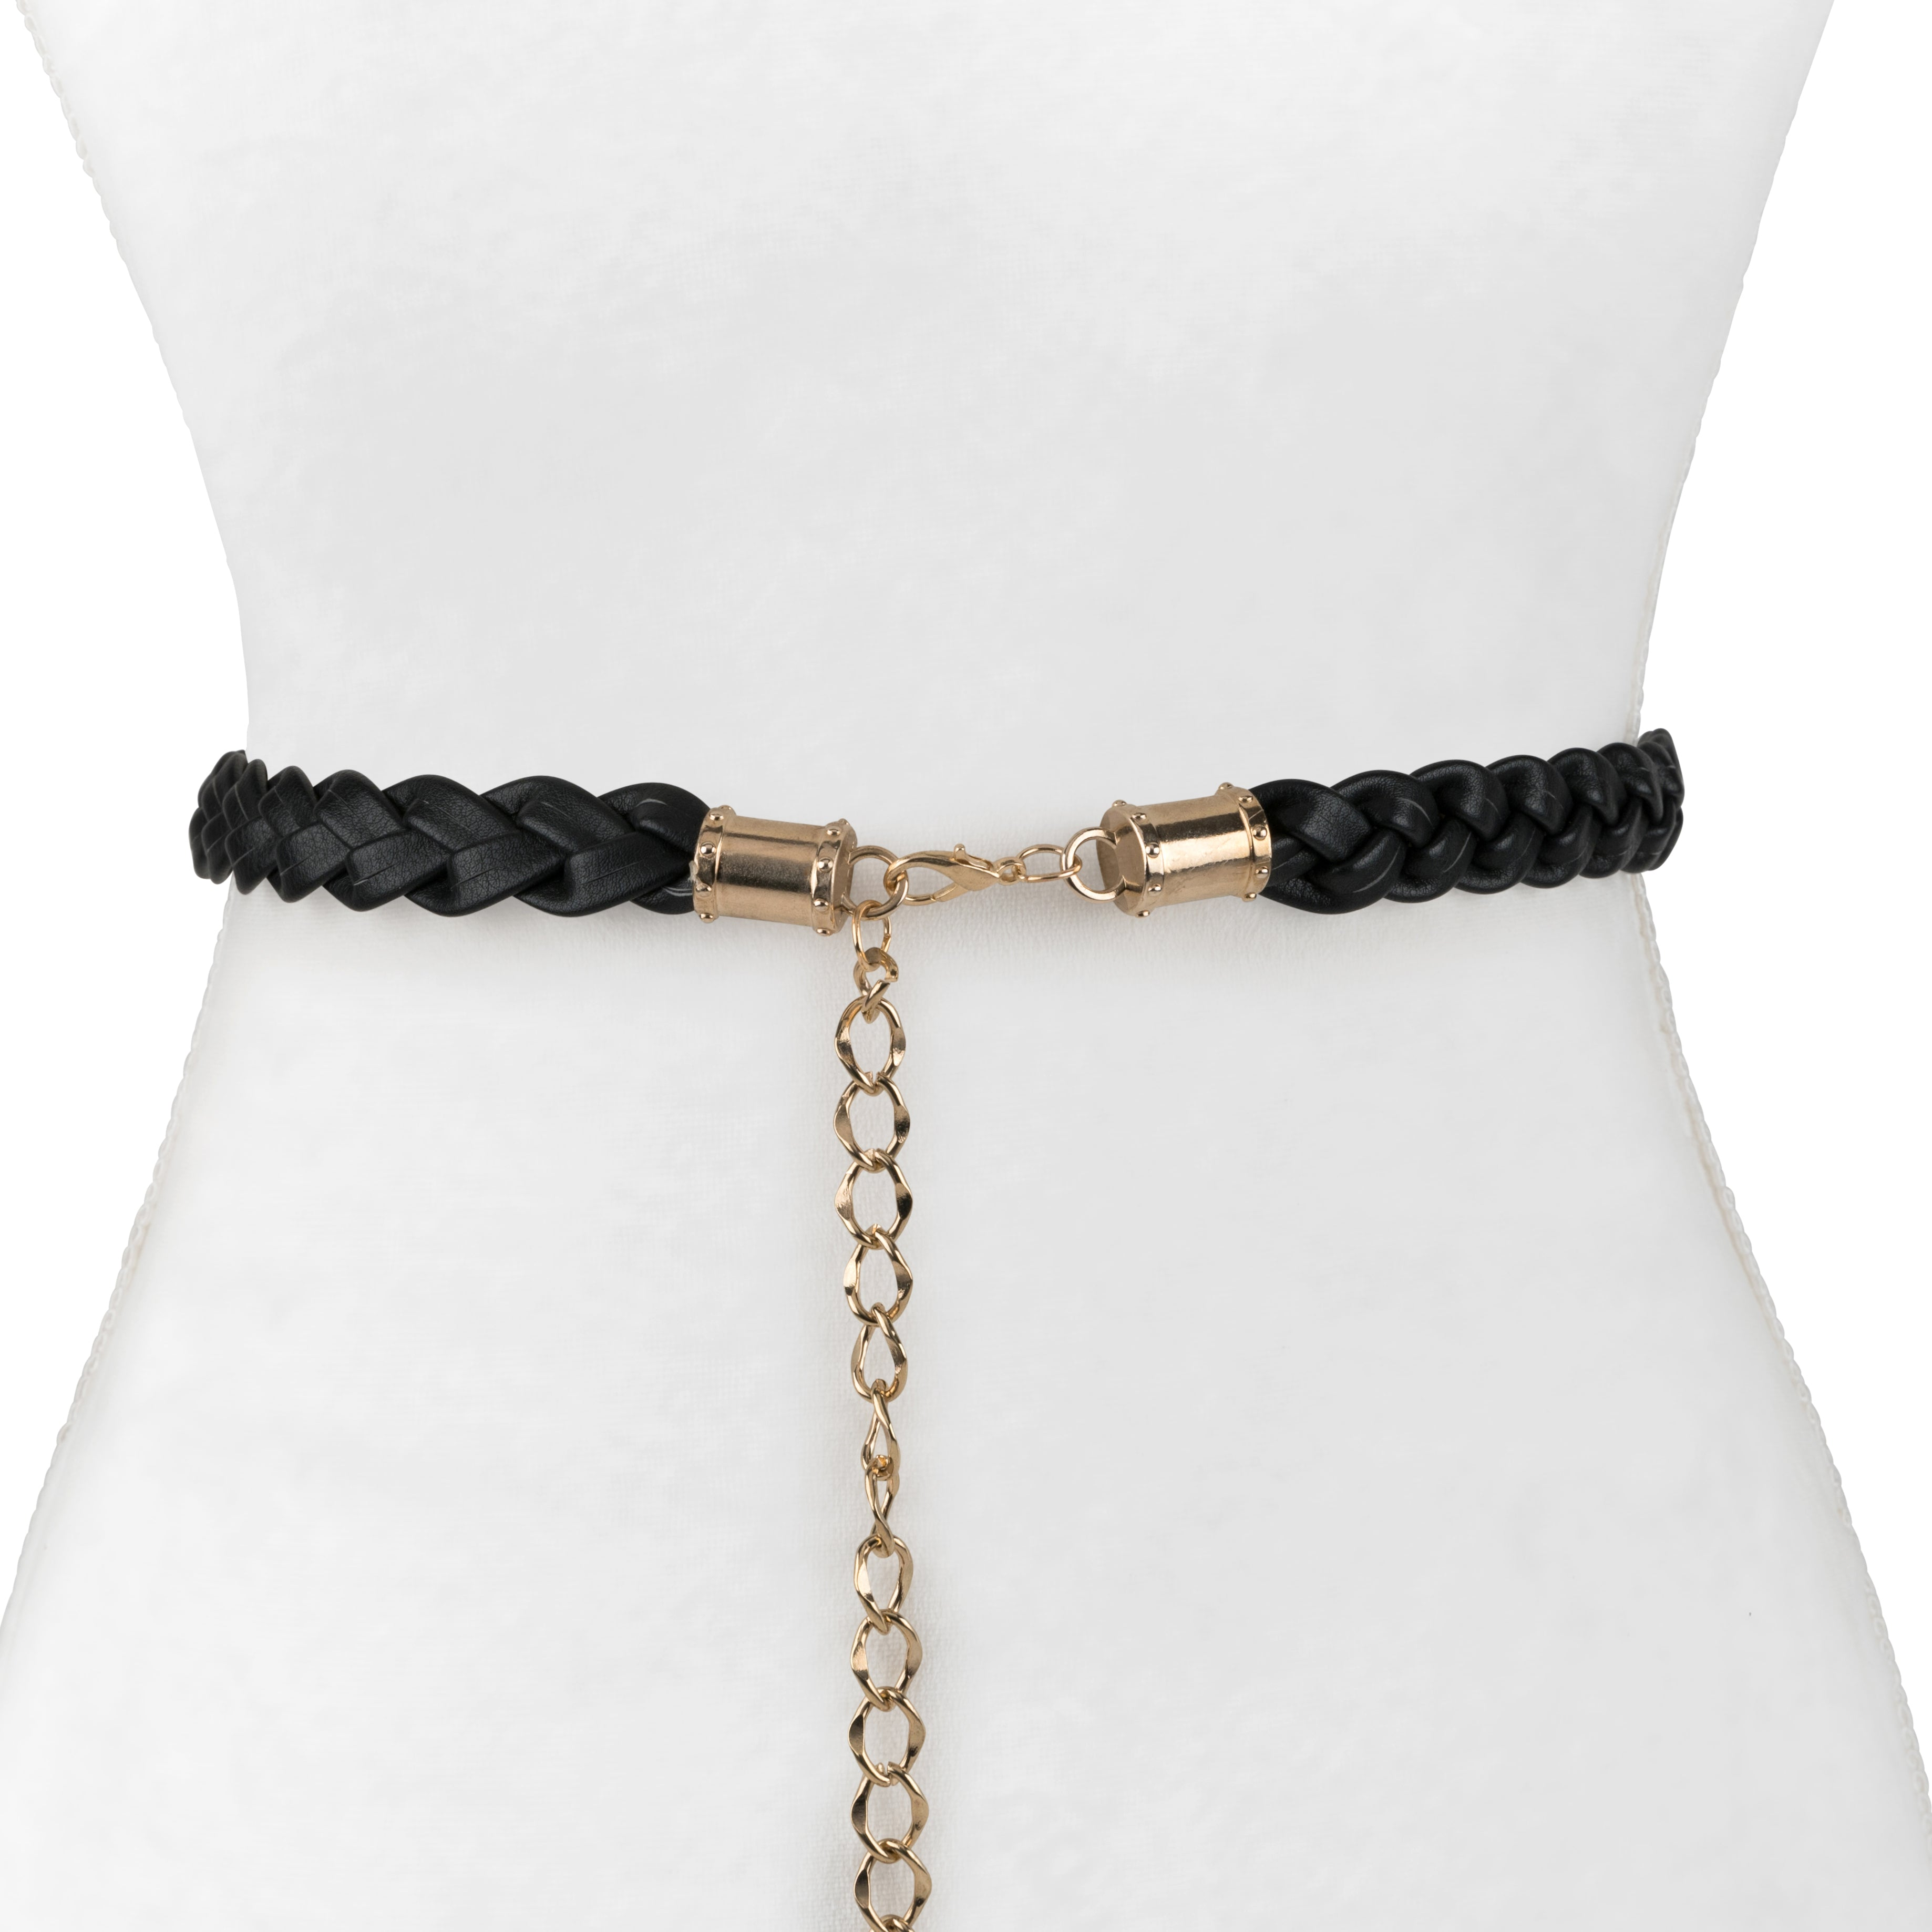 Two 12 Fashion Women's Braided Leather Belt With Chain - Two 12 Fashion